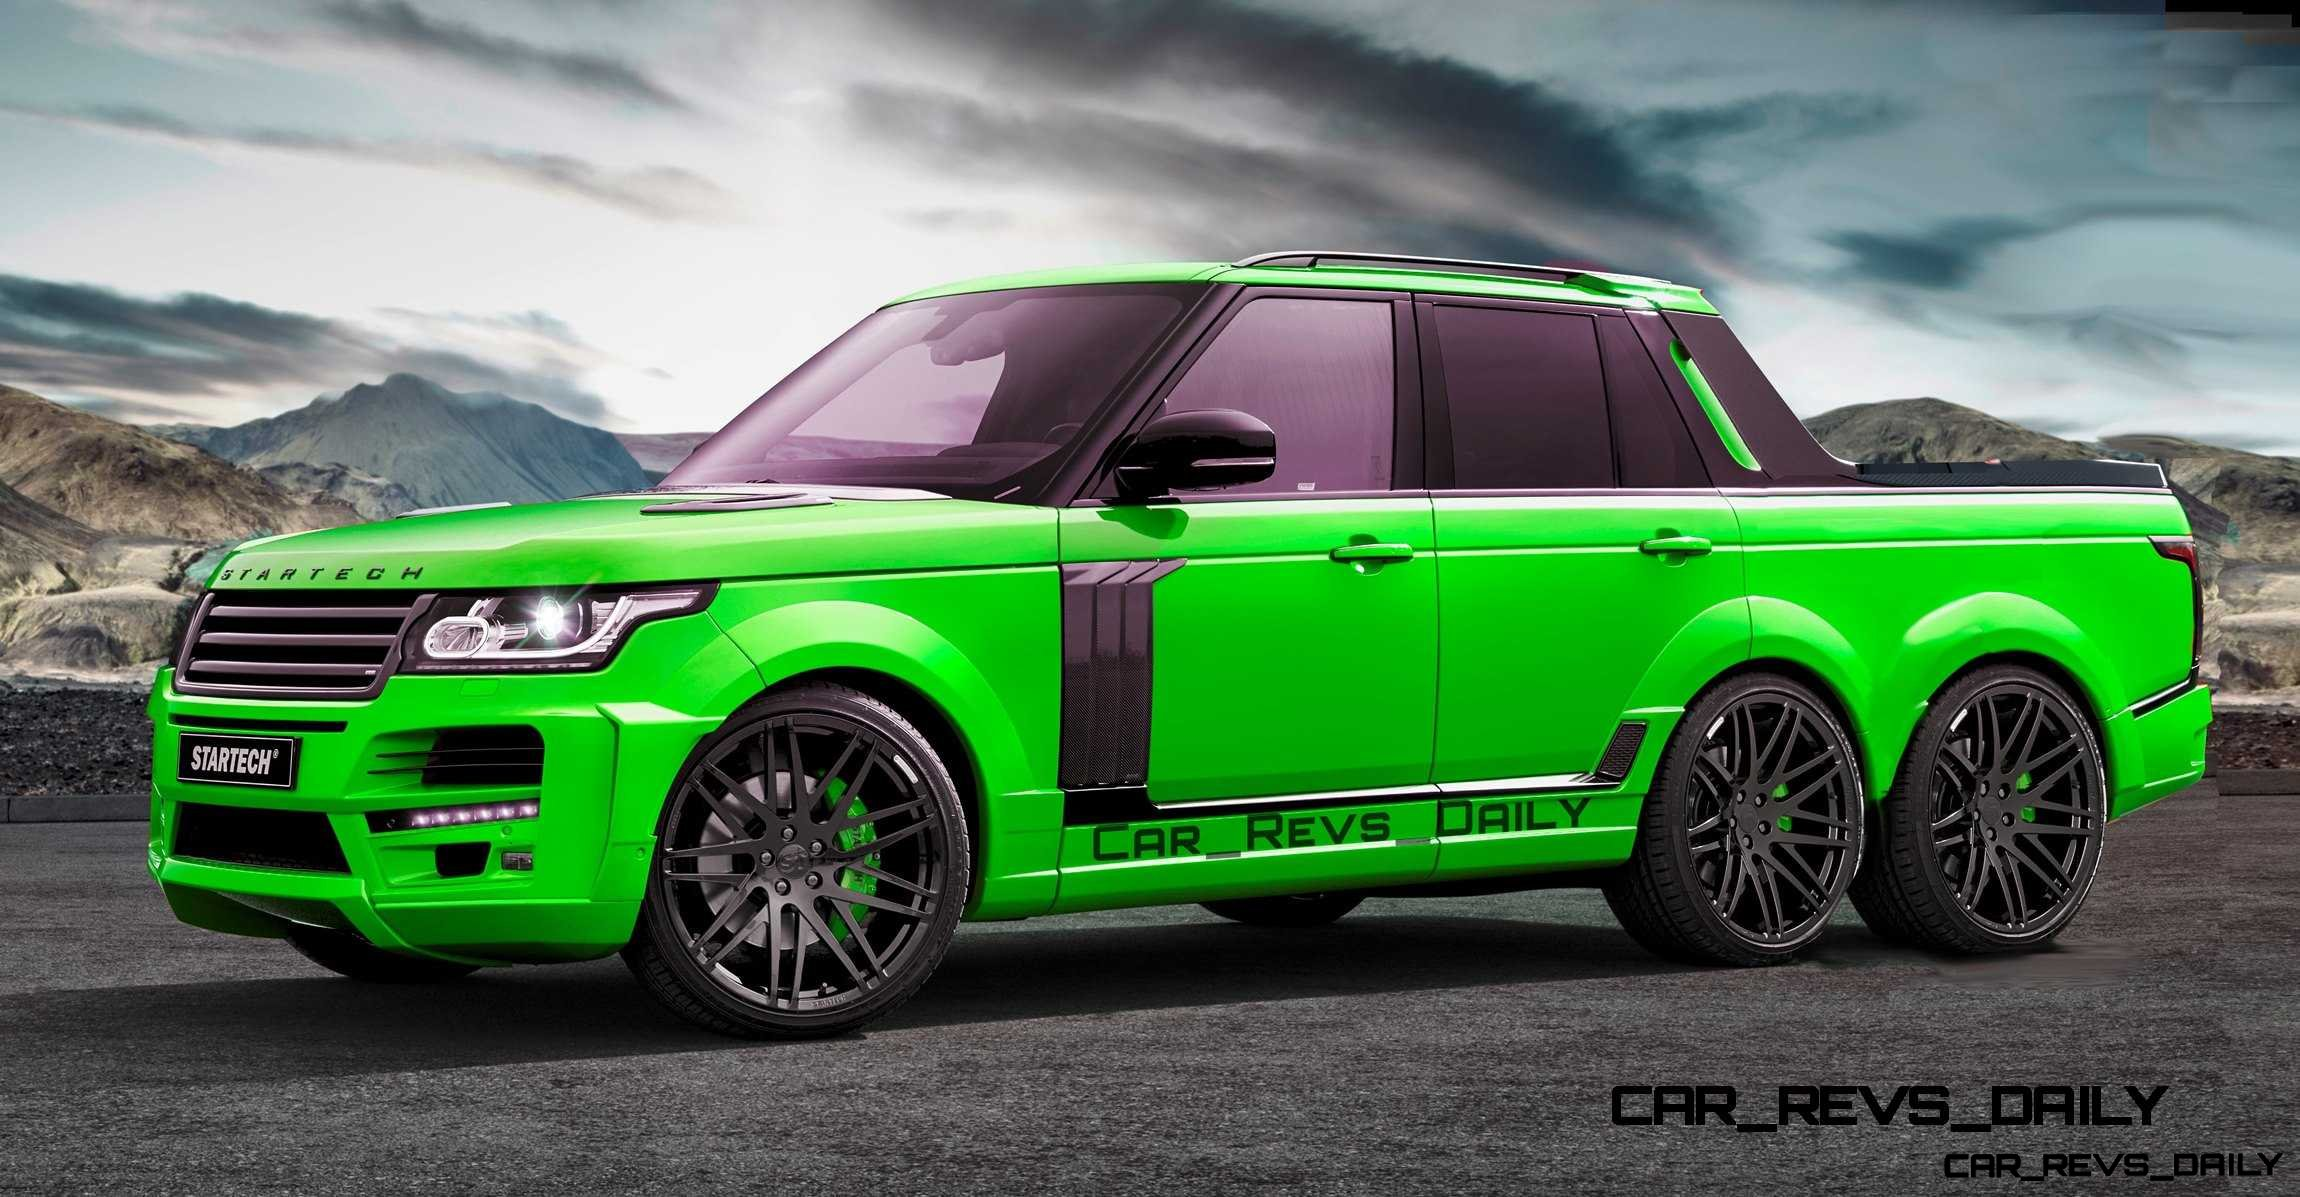 Digital Renderings Startech Range Rover 6 Long Box Pickup In 2 Angles 30 Colors